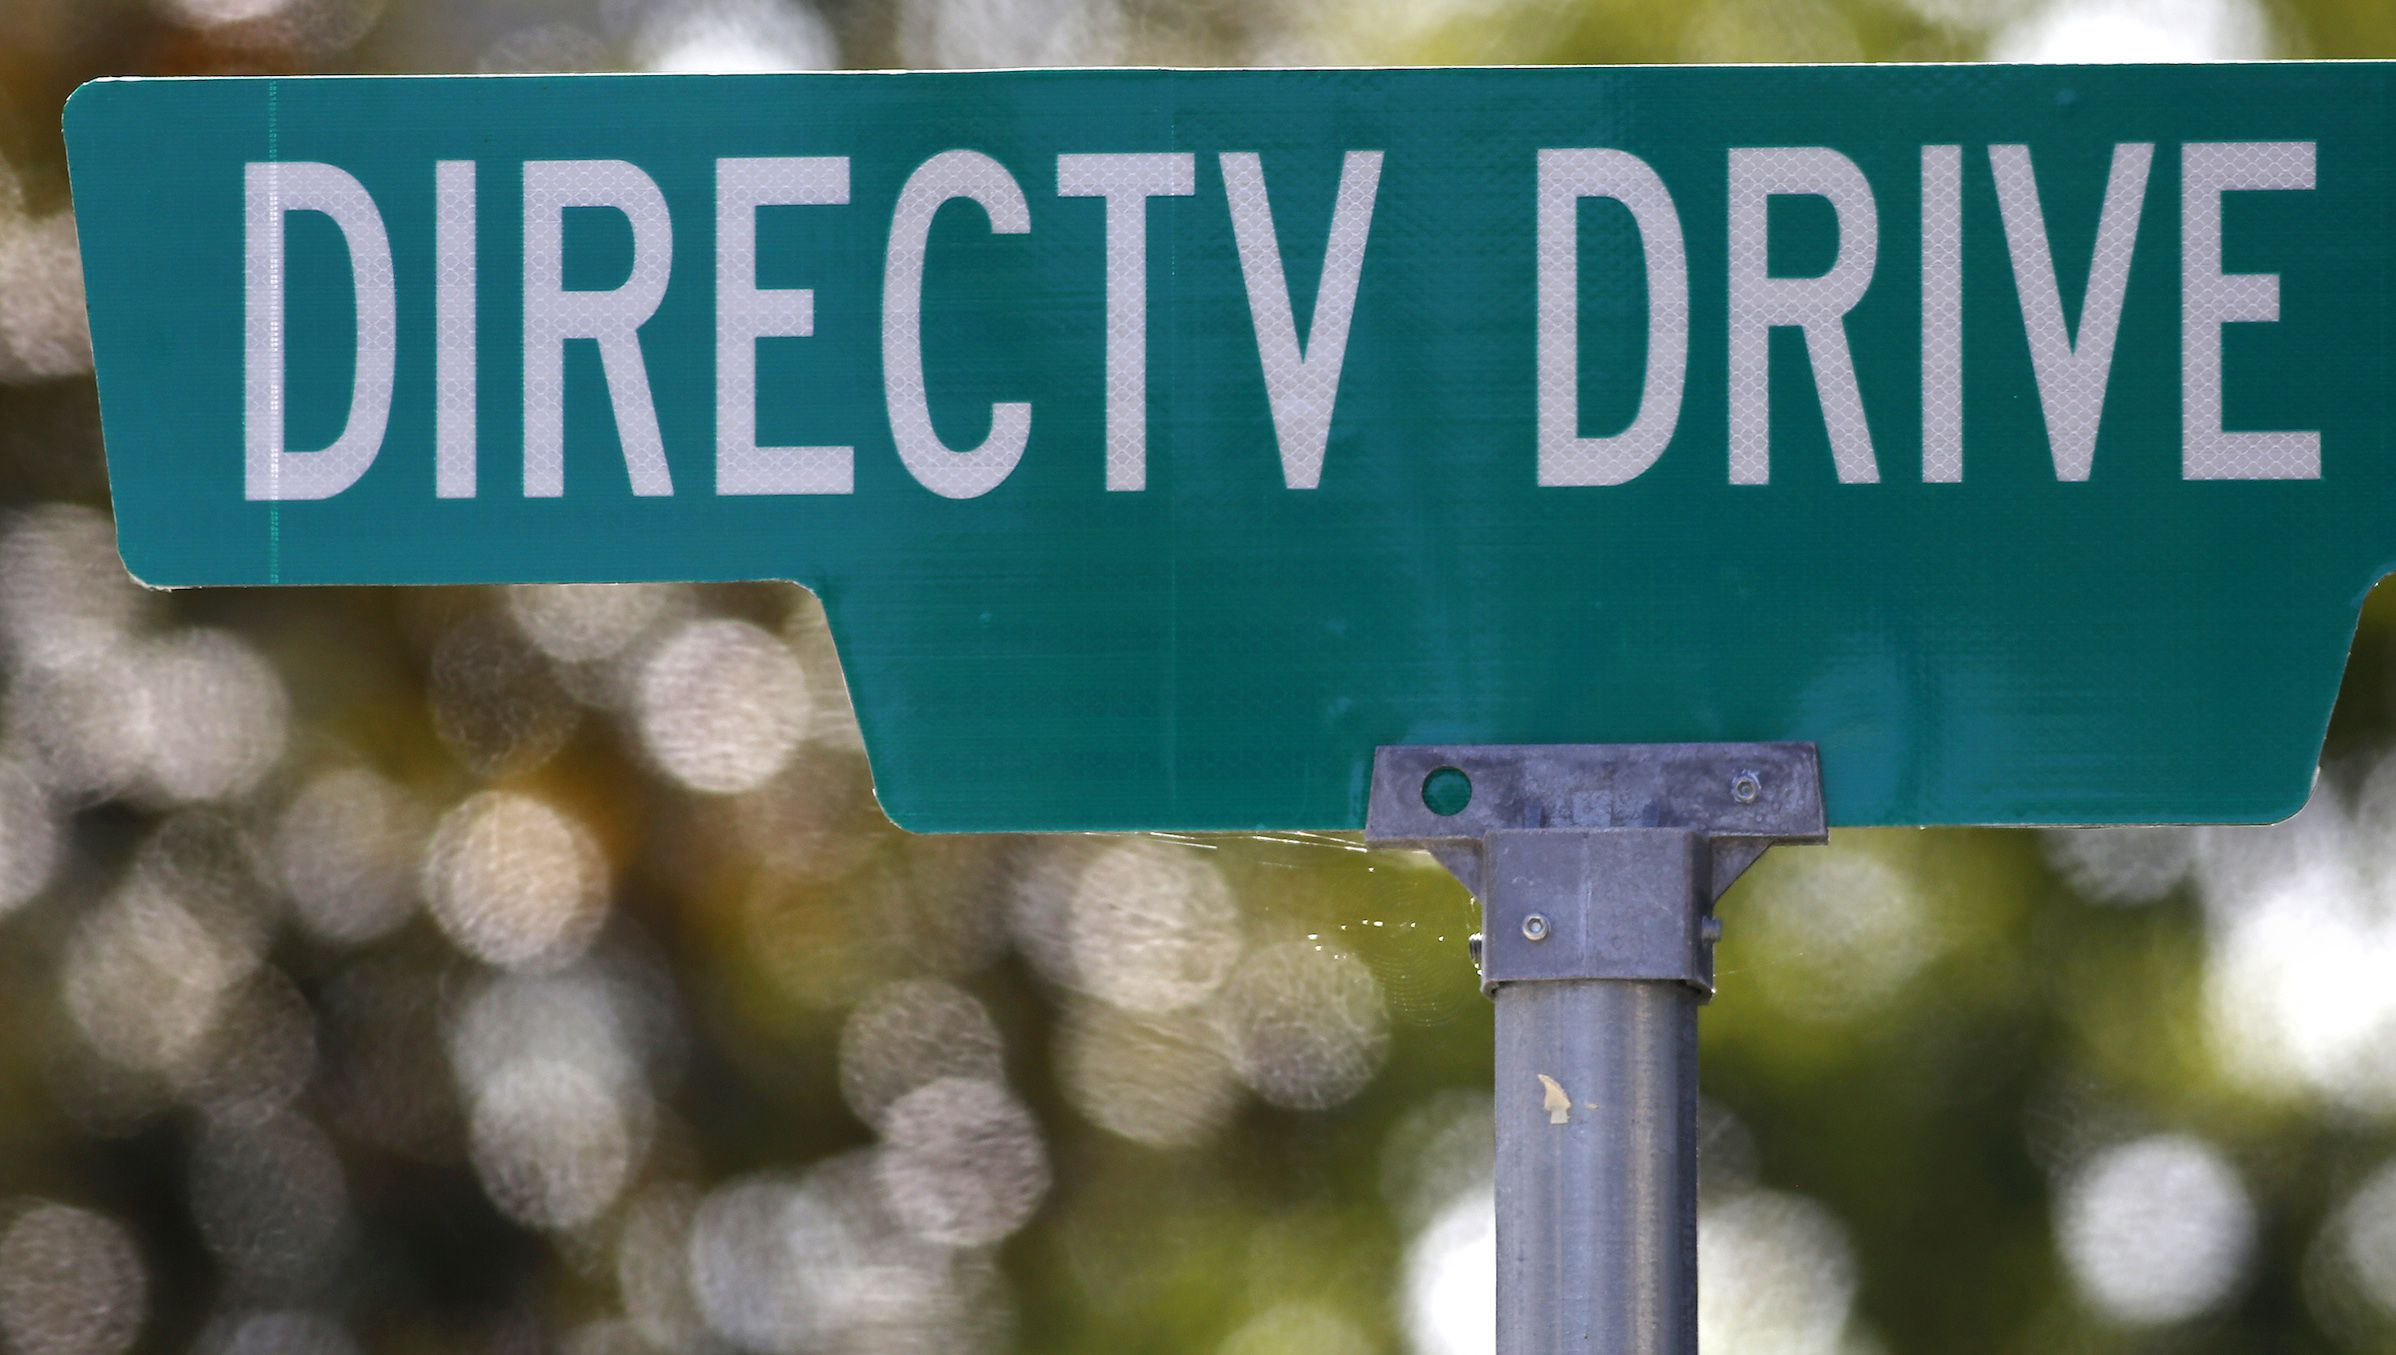 A street sign at the headquarters building of U.S. satellite TV operator DirecTV is seen in Los Angeles, California May 18, 2014. AT&T's expected acquisition of DirecTV could provide the company with a pathway to expand its services into Latin America, where the satellite operator has 18 million subscribers and a higher growth rate than in the United States.  REUTERS/Jonathan Alcorn  (UNITED STATES - Tags: BUSINESS TELECOMS) - RTR3PQ2Z